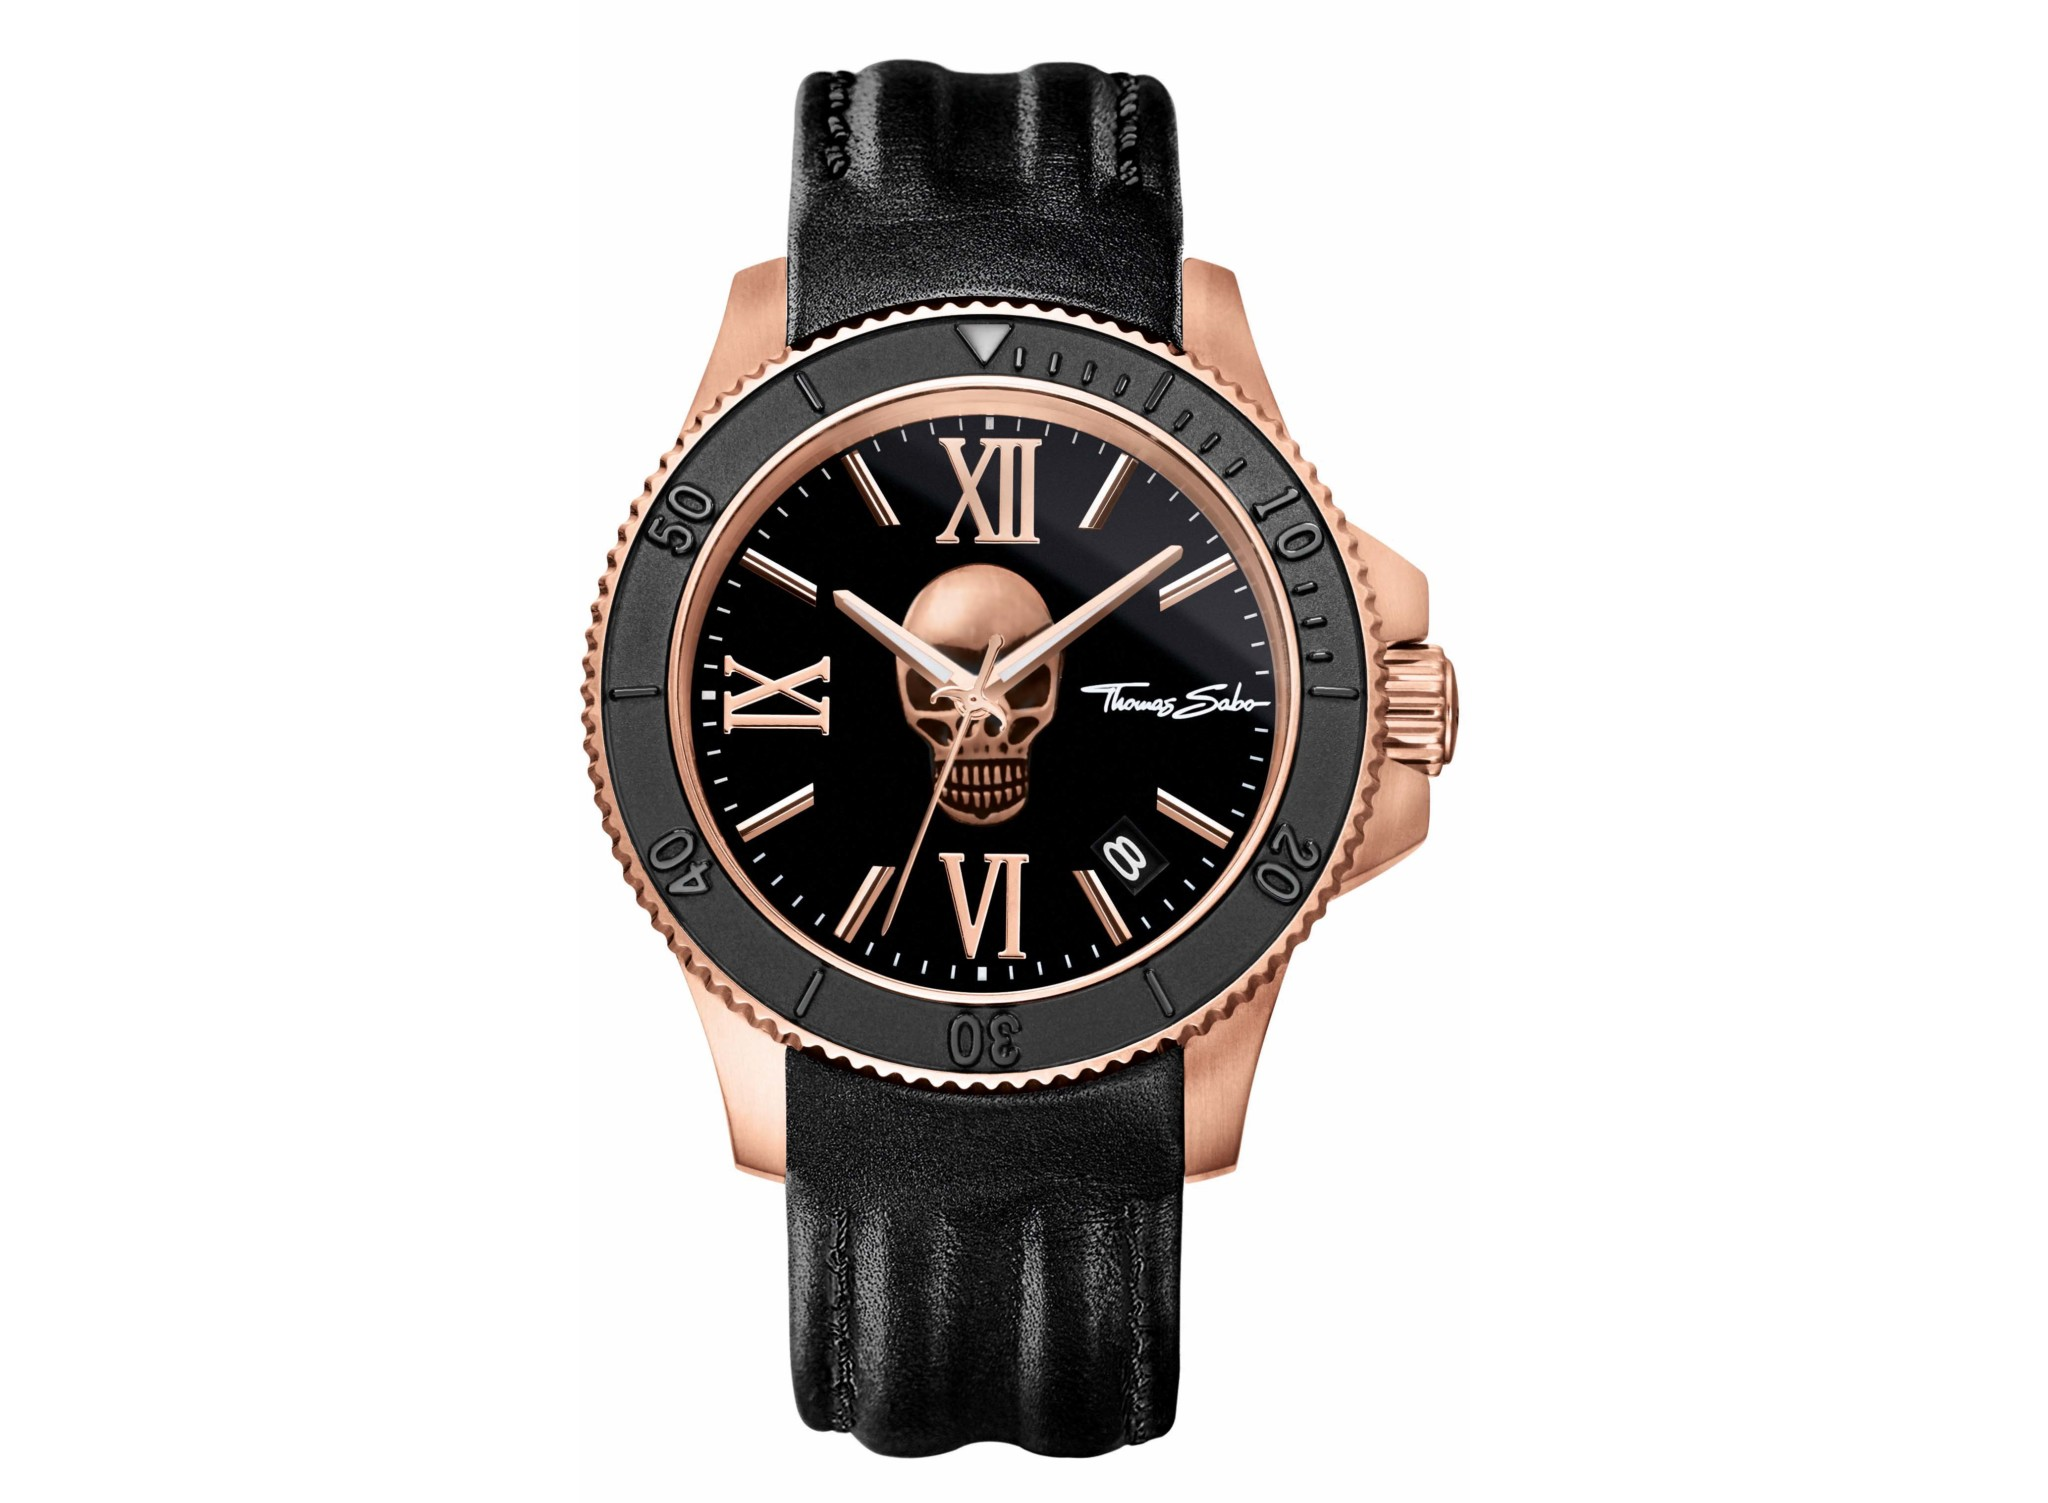 THOMAS SABO_WATCHES_AW2016_WA0279